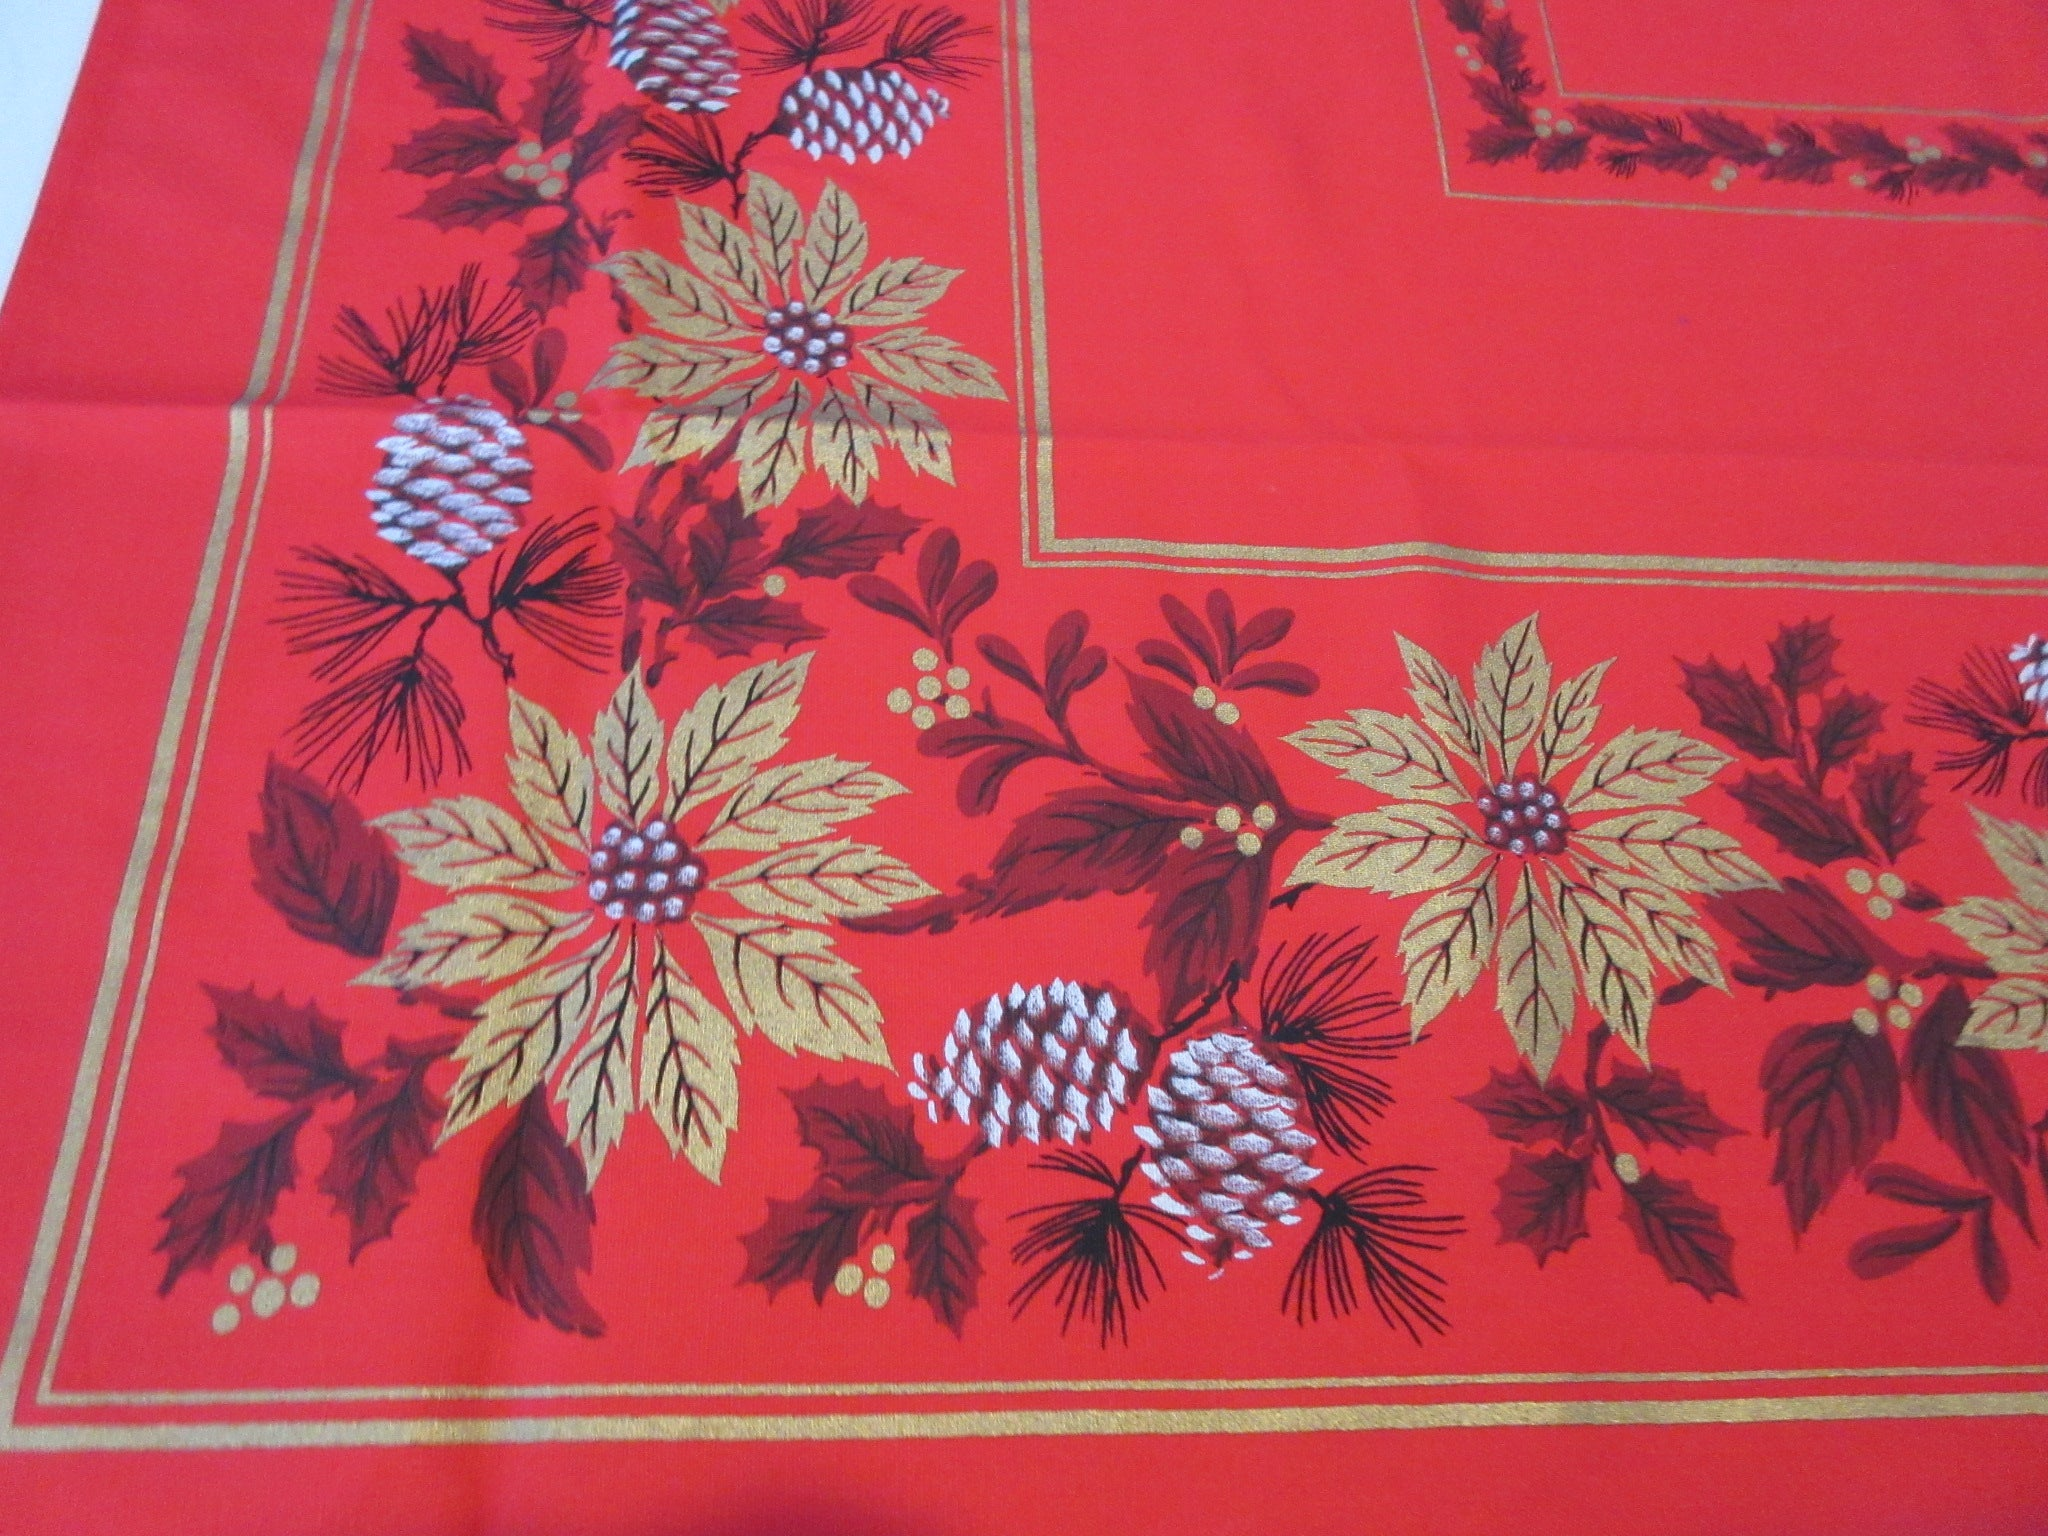 Gold Poinsettia Pinecones on Red Christmas MWT Novelty Vintage Printed Tablecloth (67 X 49)